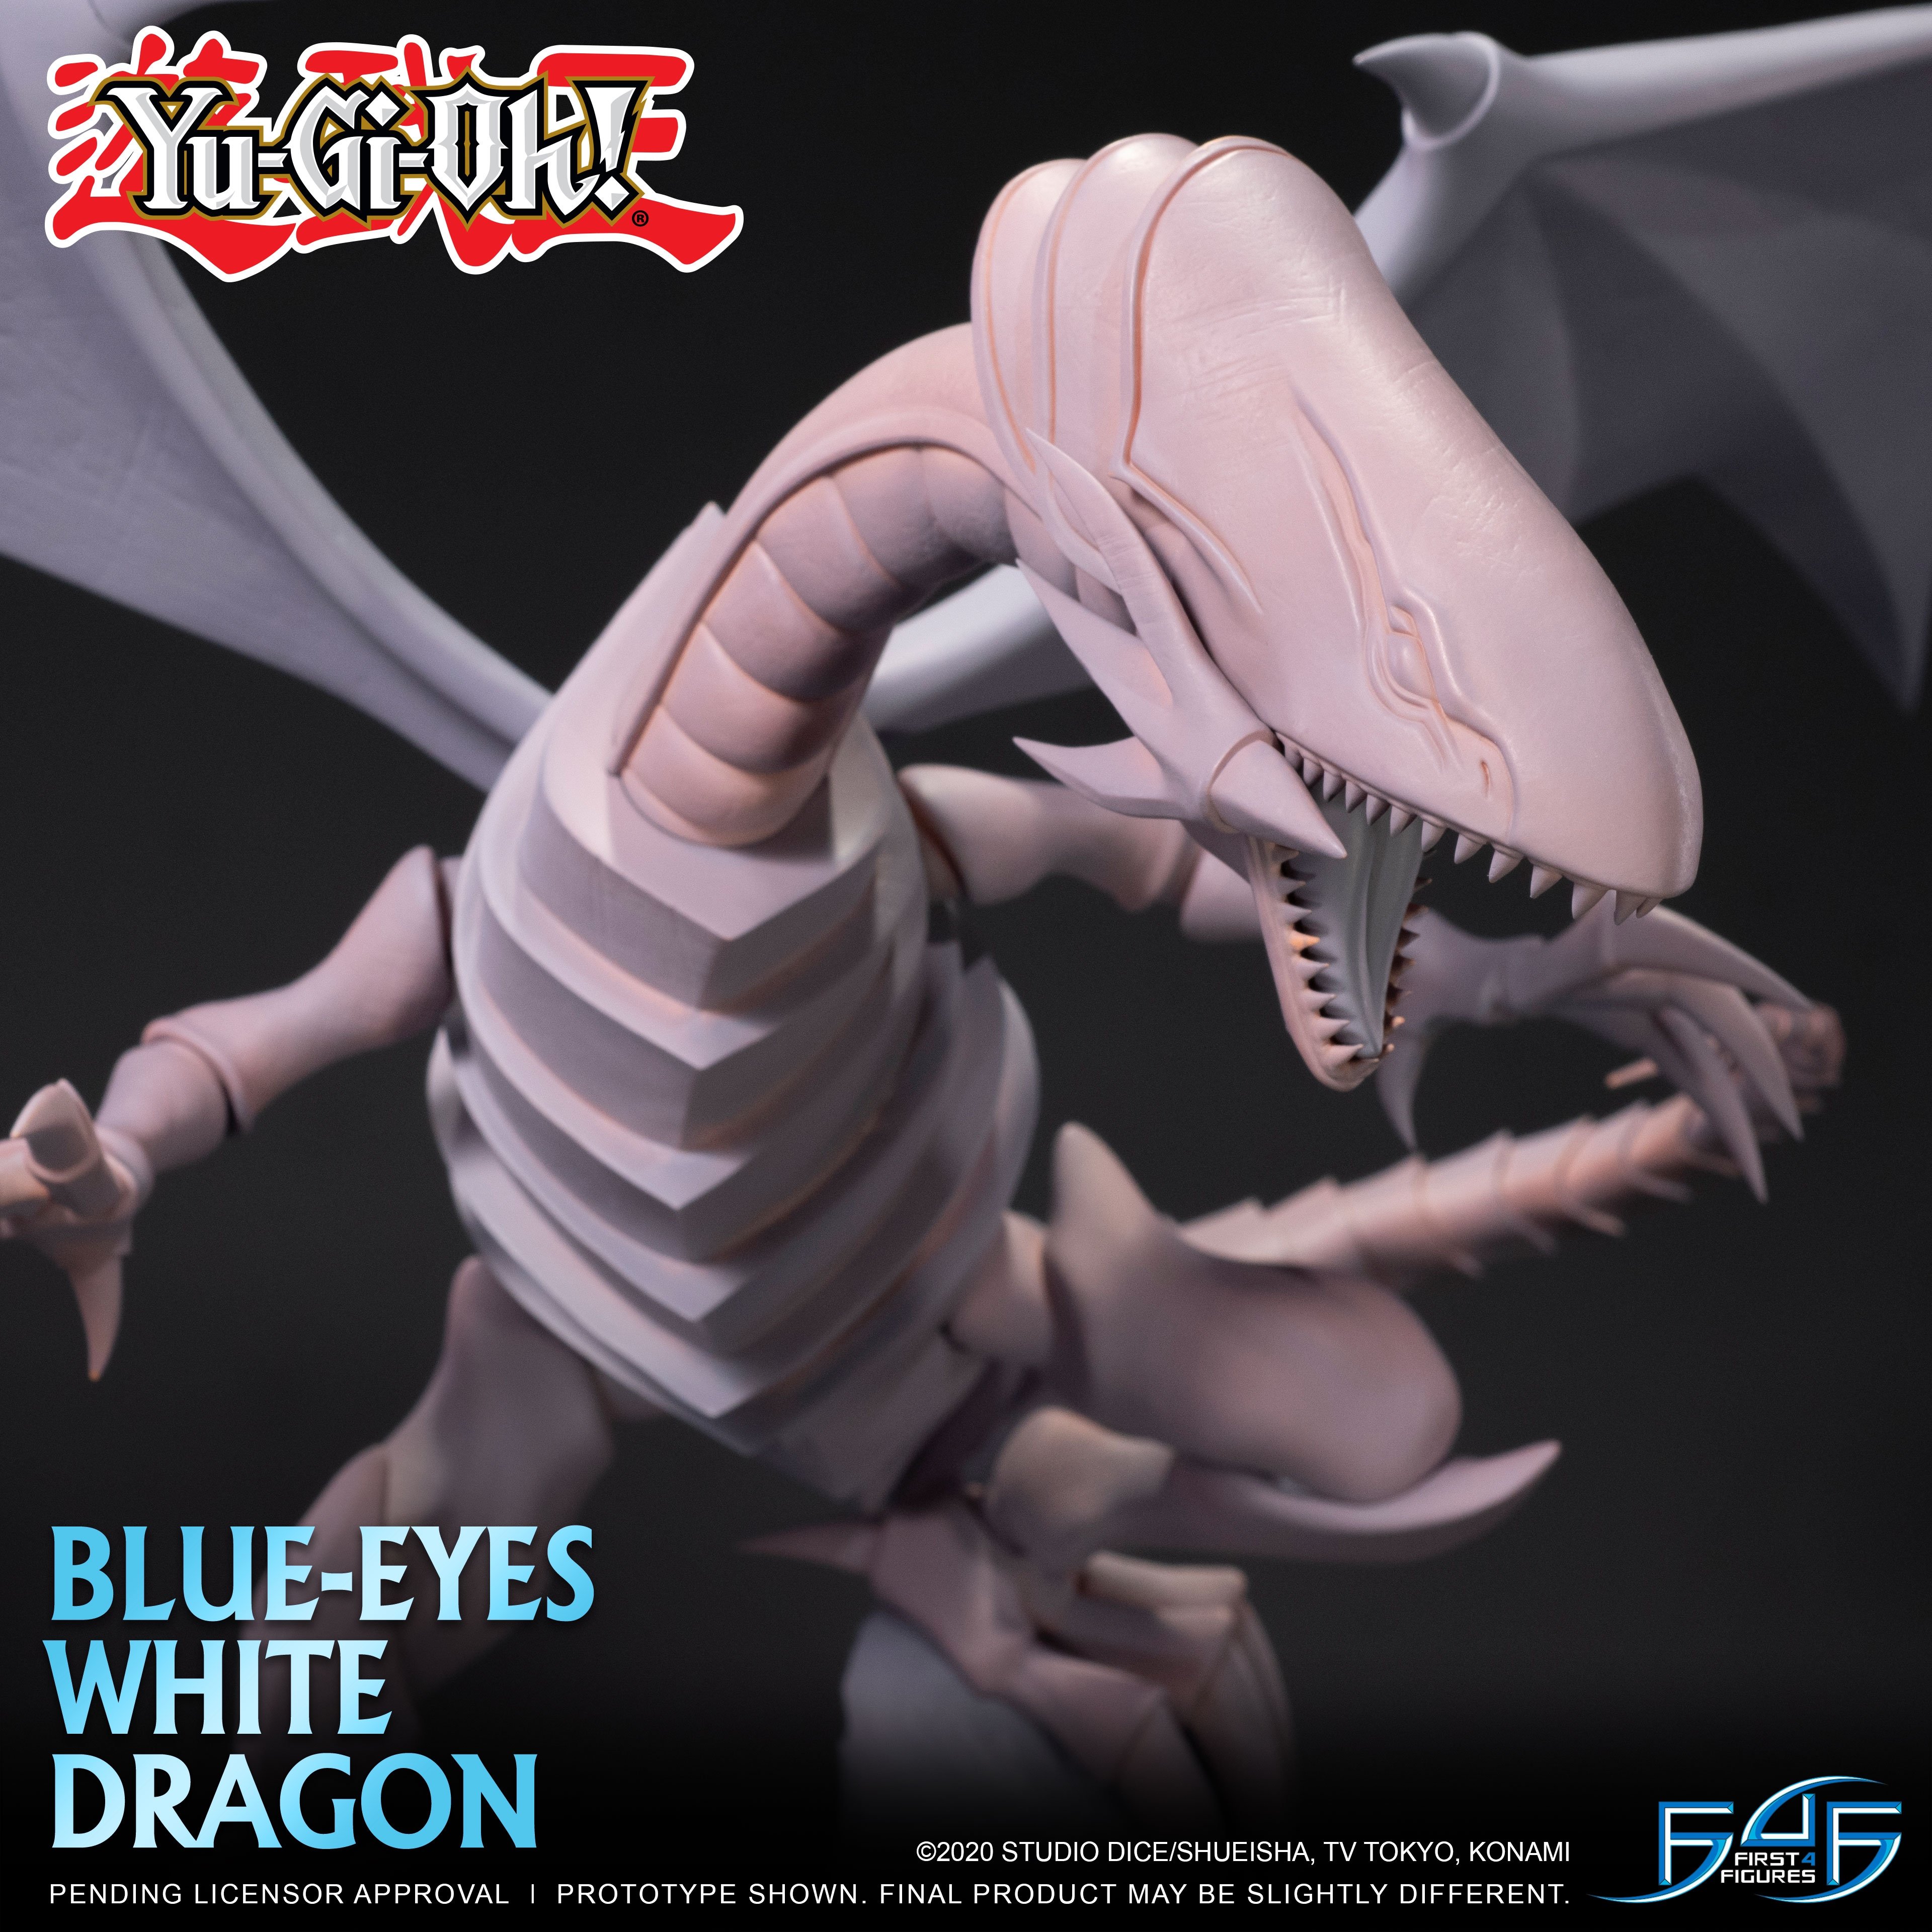 A First Look at First 4 Figures' Yu-Gi-Oh! – Blue-Eyes White Dragon Statue